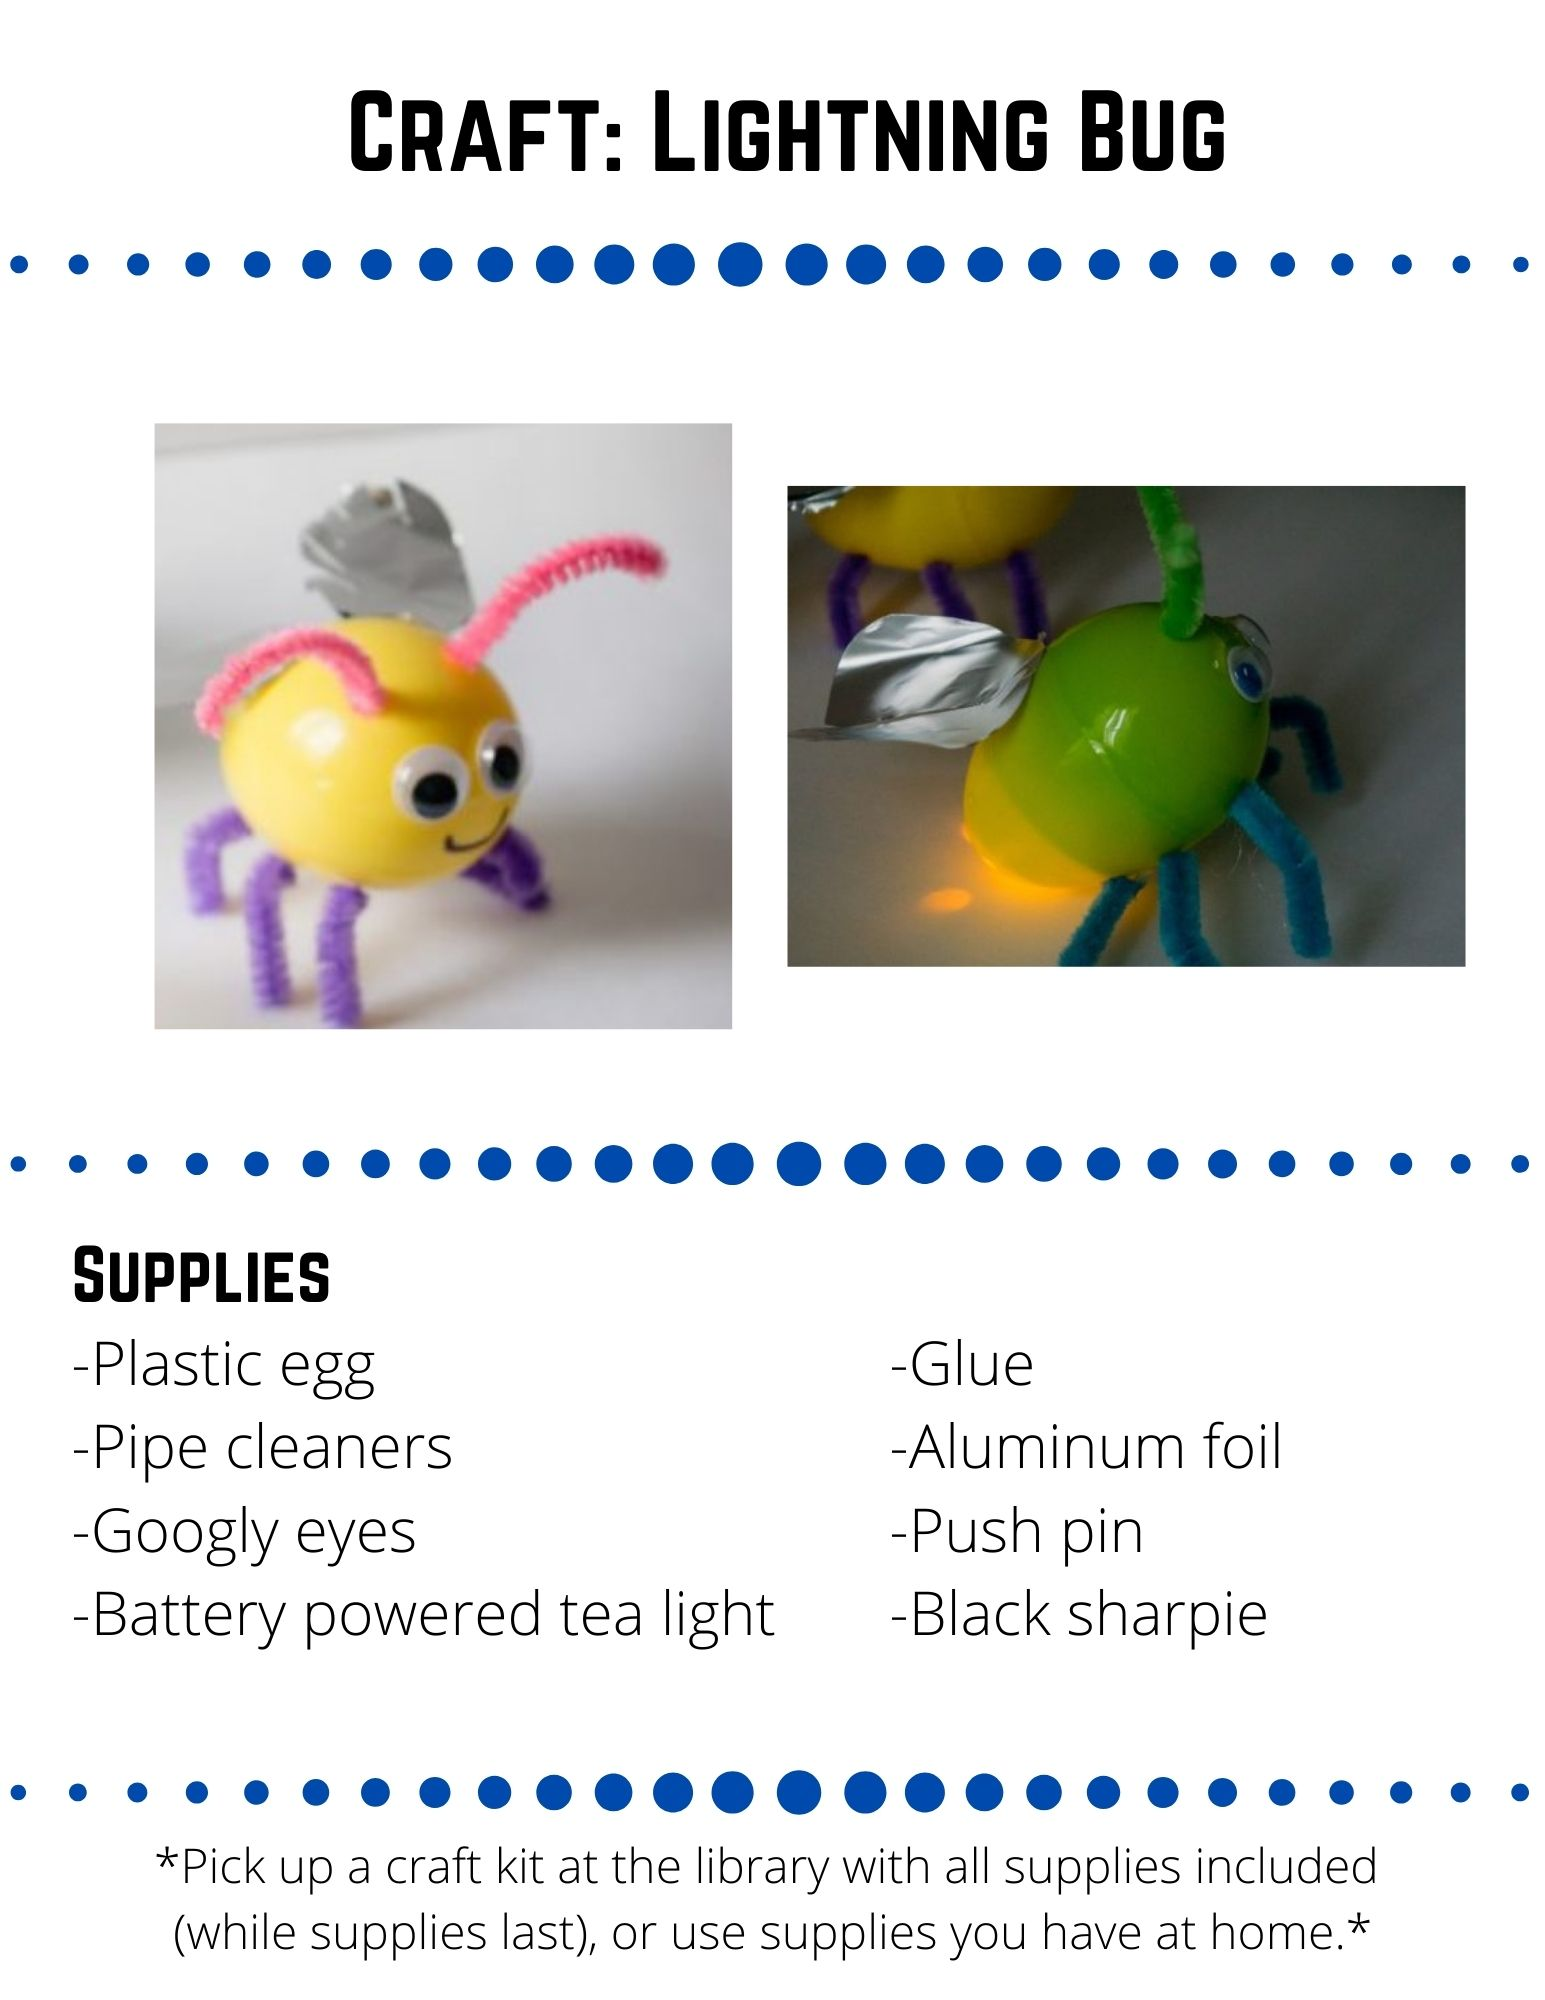 Craft: Lightning Bug.  Supplies: -Plastic egg -Pipe cleaners -Googly eyes -Battery powered tea light-Glue -Aluminum foil -Push pin -Black sharpie.  Use your push pin to punch 6 holes in the plastic egg. Punch 3 holes on each side (one on the short half and 2 on the longer half of each side).  These will be for the legs.On the short half of the egg, opposite the holes you just punched, use the push pin to punch two holes for the antennae.Cut a pipe cleaner into six 1 ½ inch pieces and stick them  into the leg holes. Bend the pipe cleaners to look like legs.Cut another pipe cleaner into two 2 inch pieces and stick them into the antennae holes.  Bend the pipe cleaners to look like antennae.Put the battery powered tea light inside  the longer end of the egg, with the light facing towards the bug's backside. Close the egg.Glue the googly eyes on under the antennae and draw a smiley face with the black sharpie.Cut some wings out of aluminum foil and glue them to the back of the lightning bug.